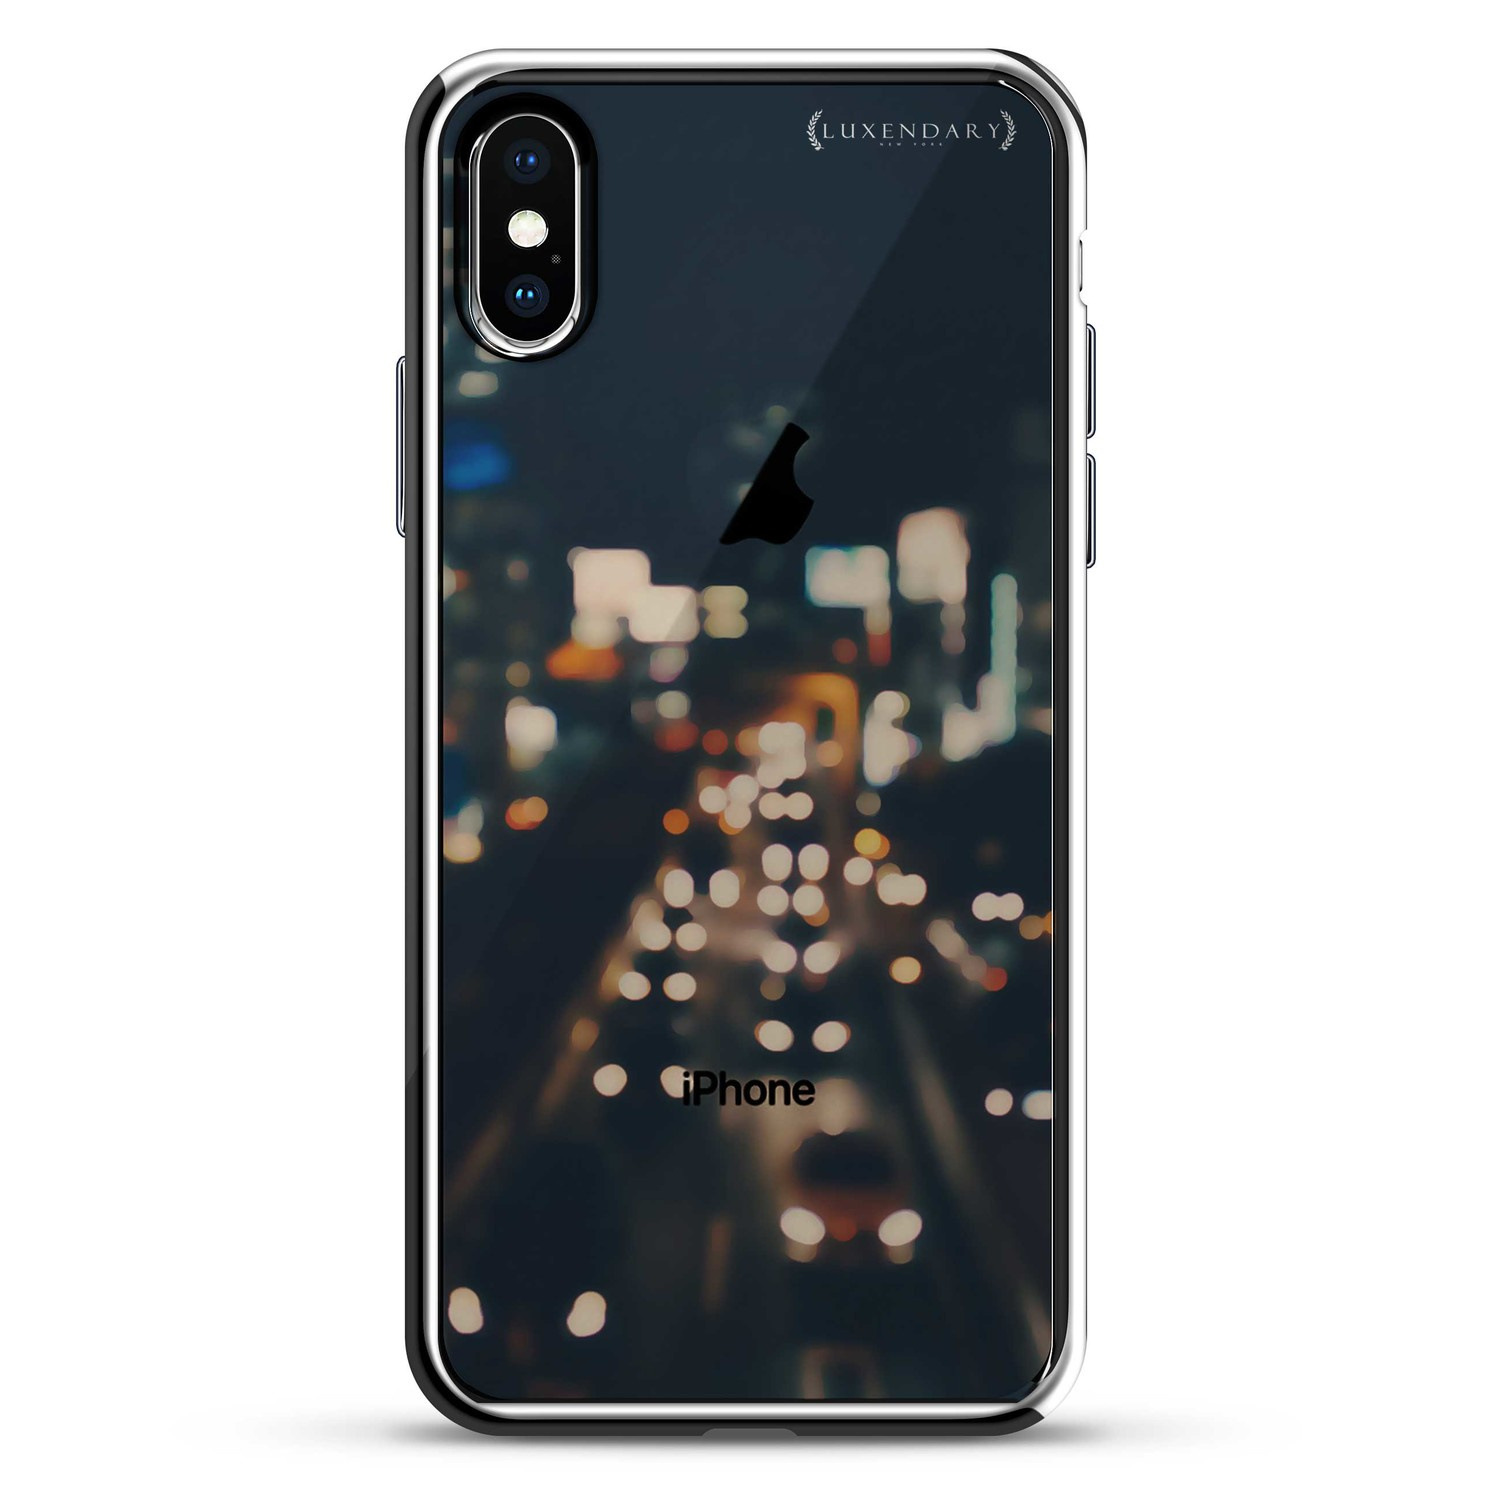 Highway Road Trip Lights Iphone 6 6s Plus Luxendary Chrome Case Led